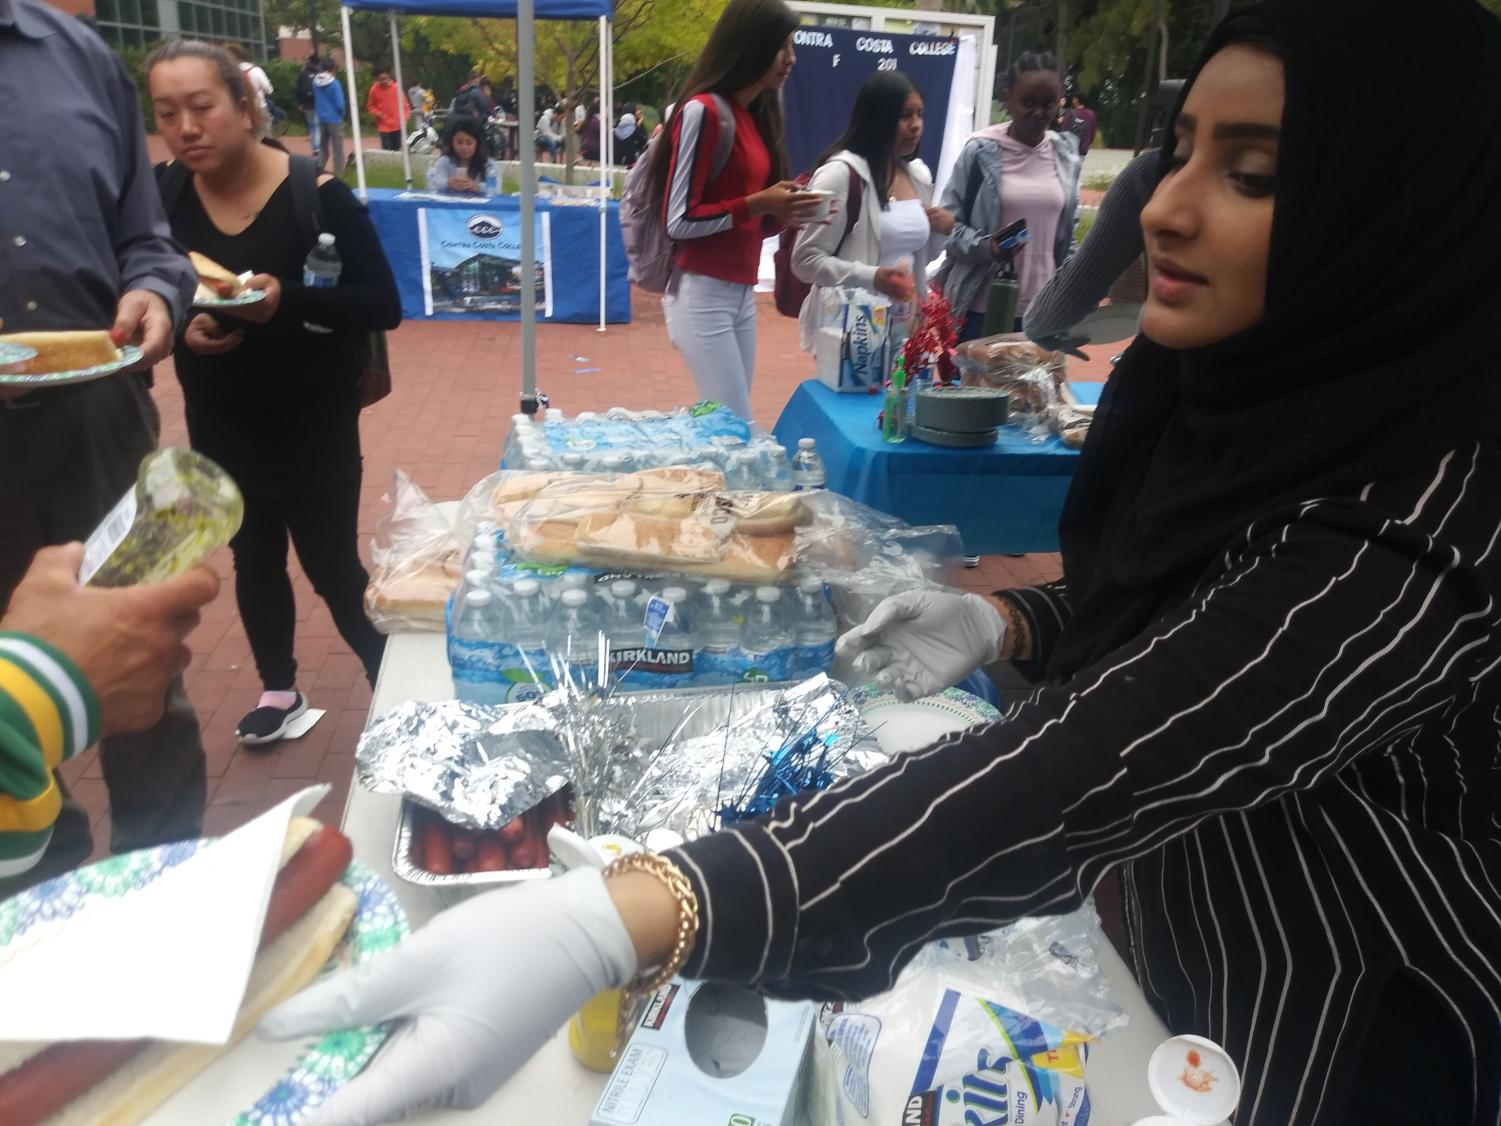 Liberal arts major Aber Mudhish hands out a hot dog  to eager students during Welcome Week on Aug. 28.